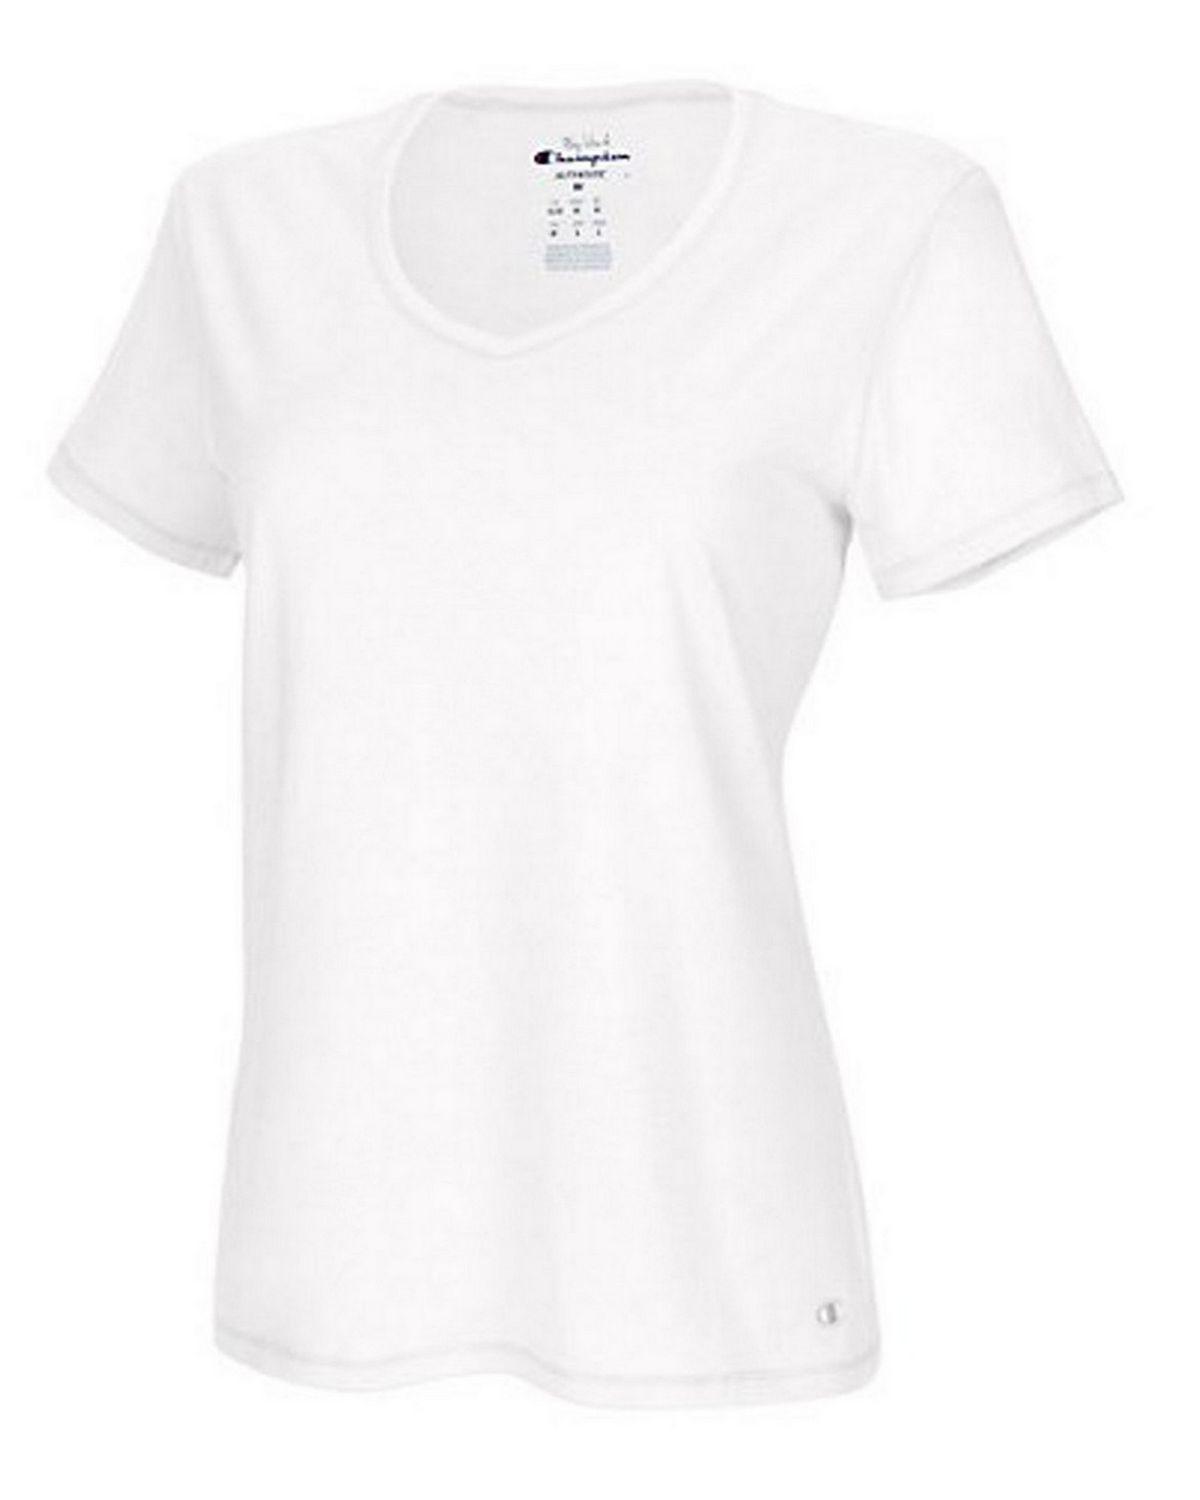 Champion 8875 Authentic Womens Jersey Tee - White - L 8875